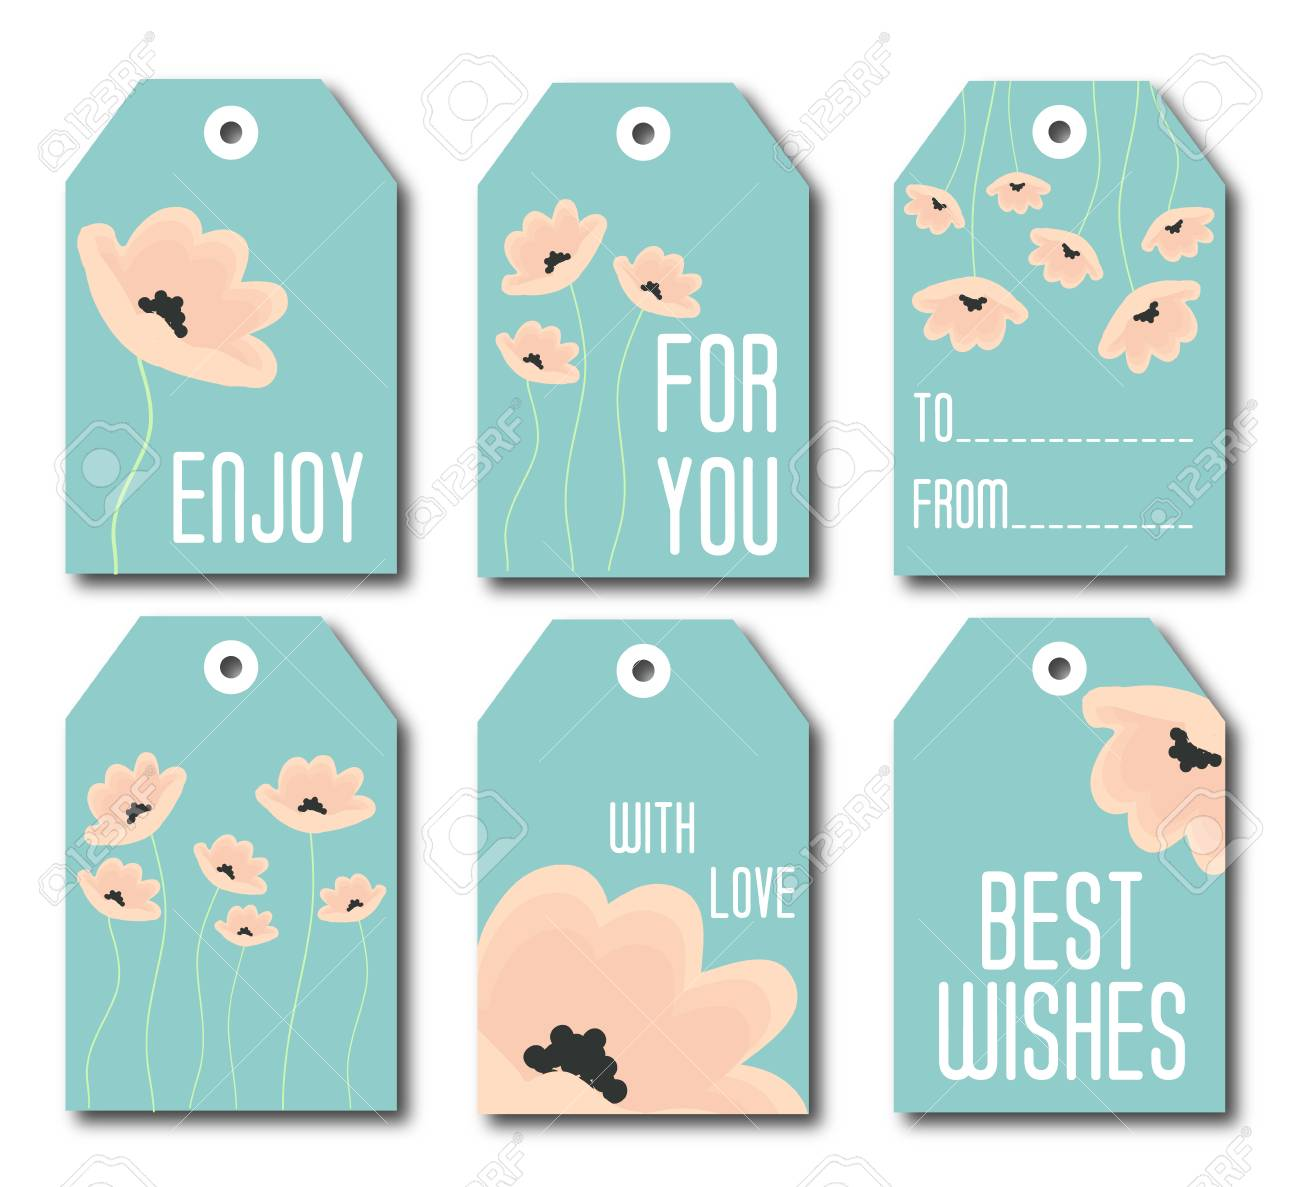 photograph regarding Cute Gift Tags Printable named Range of 6 lovable redy-towards-employ reward tags. Mounted of 6 printable..